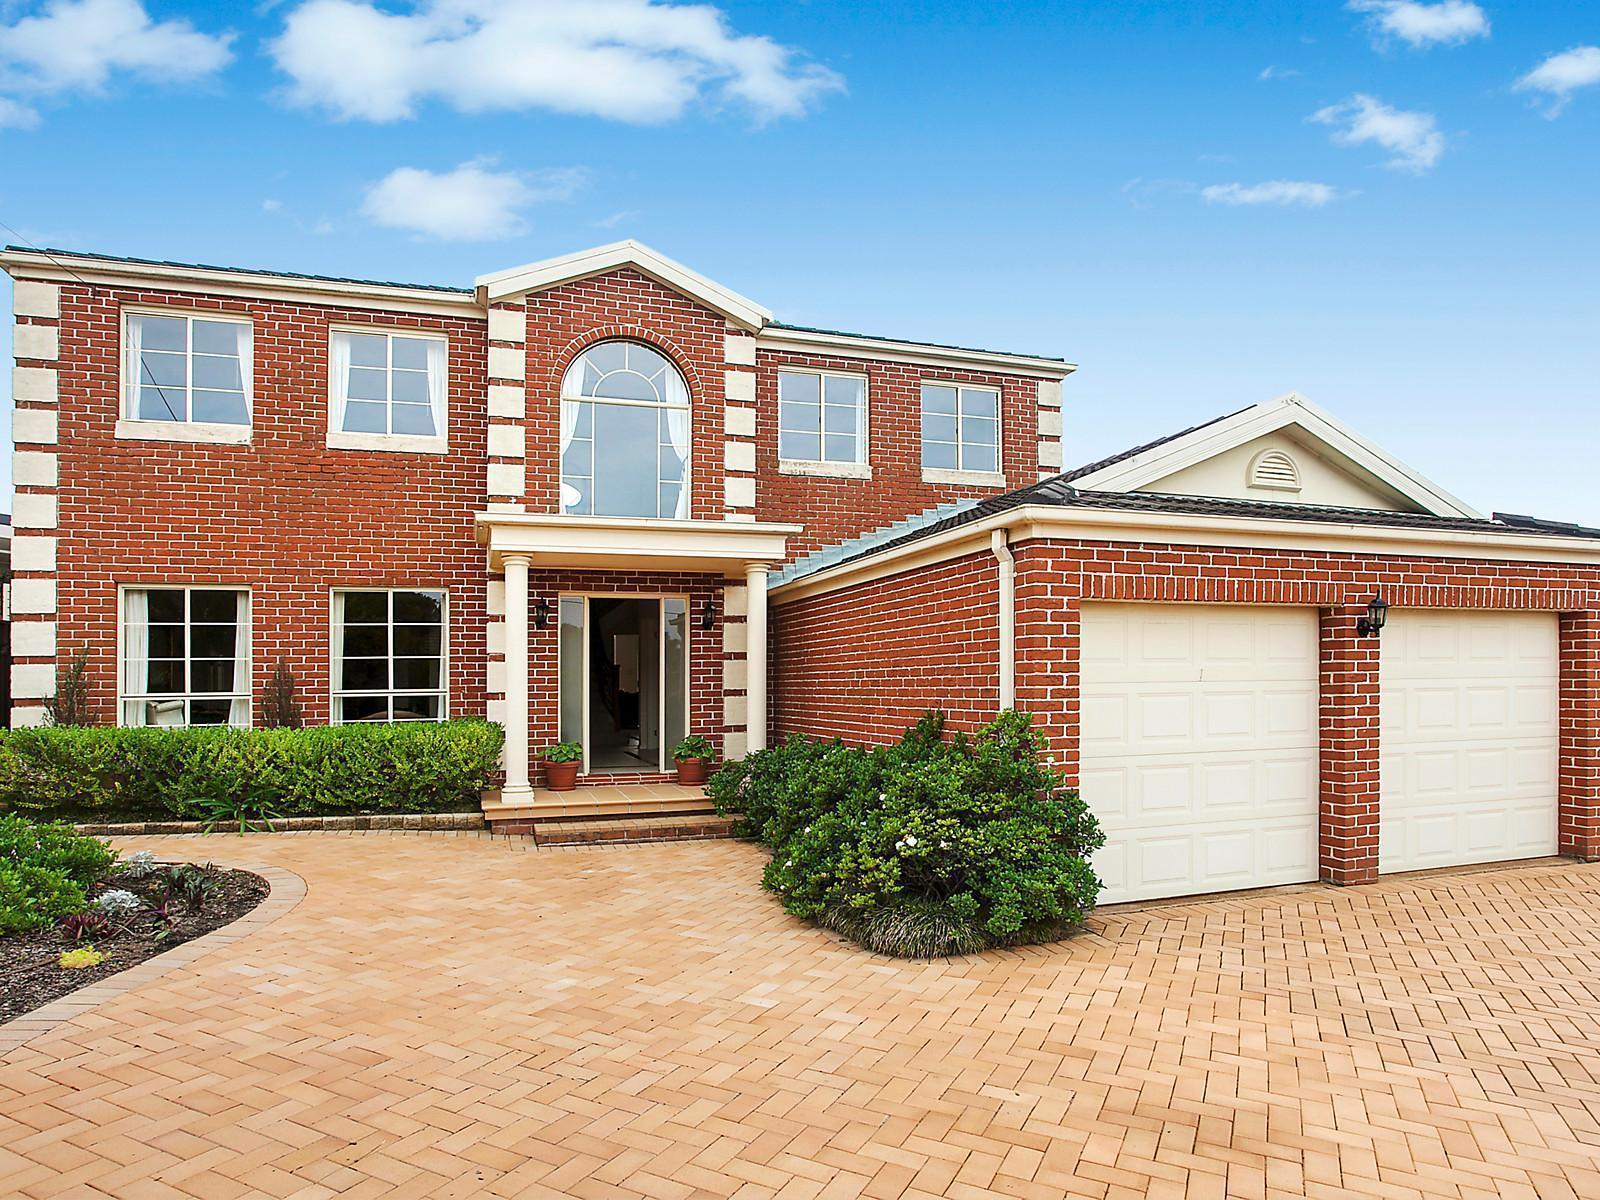 Picture of 35 Ash Avenue, Caringbah South